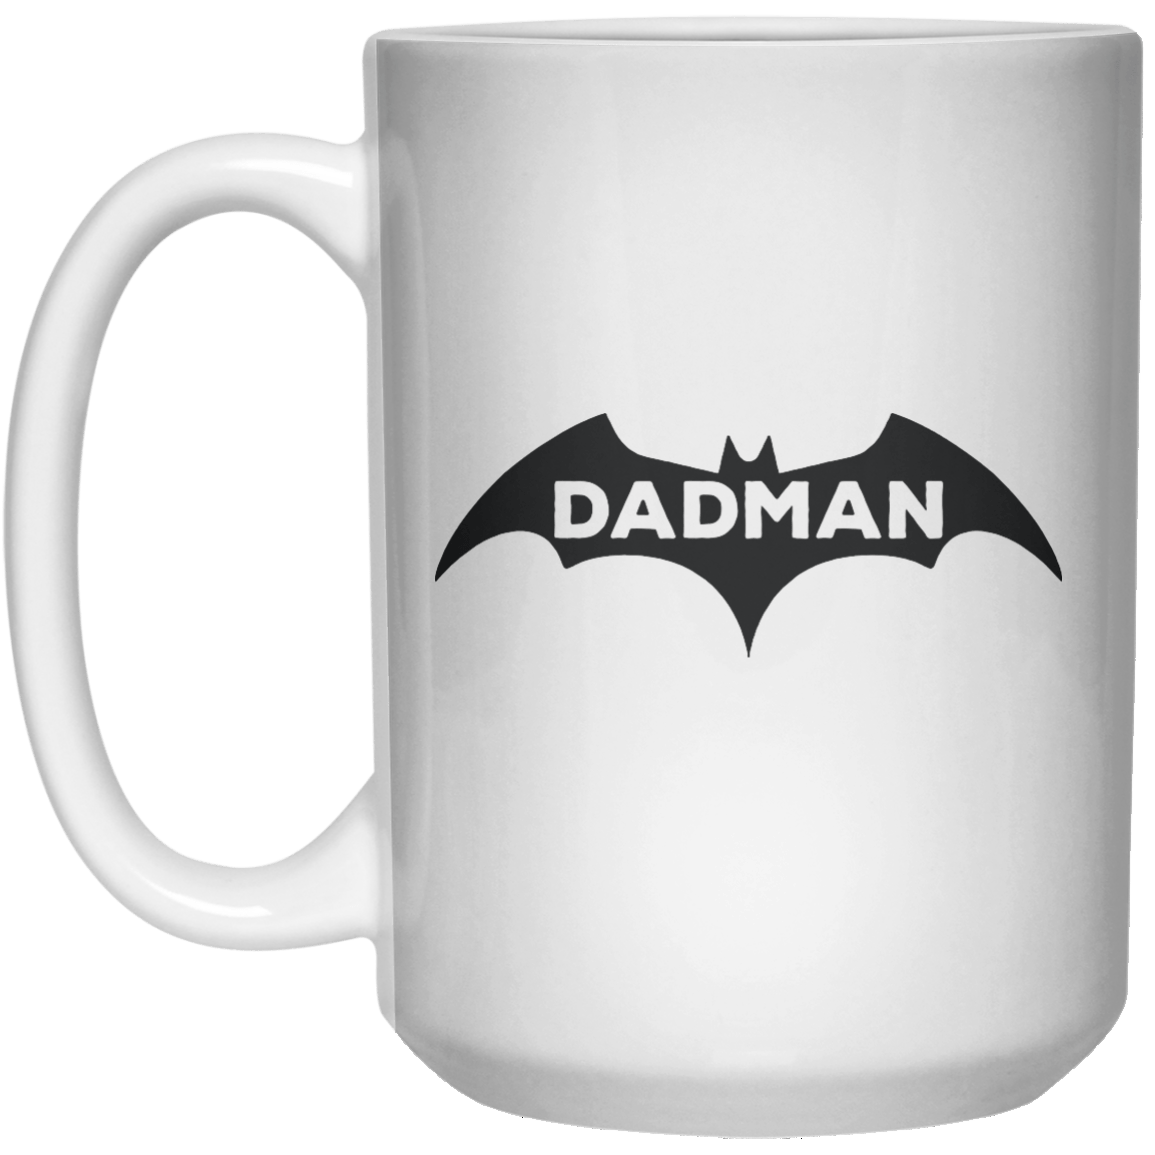 dadman MUG  Mug - 15oz - Shirtoopia